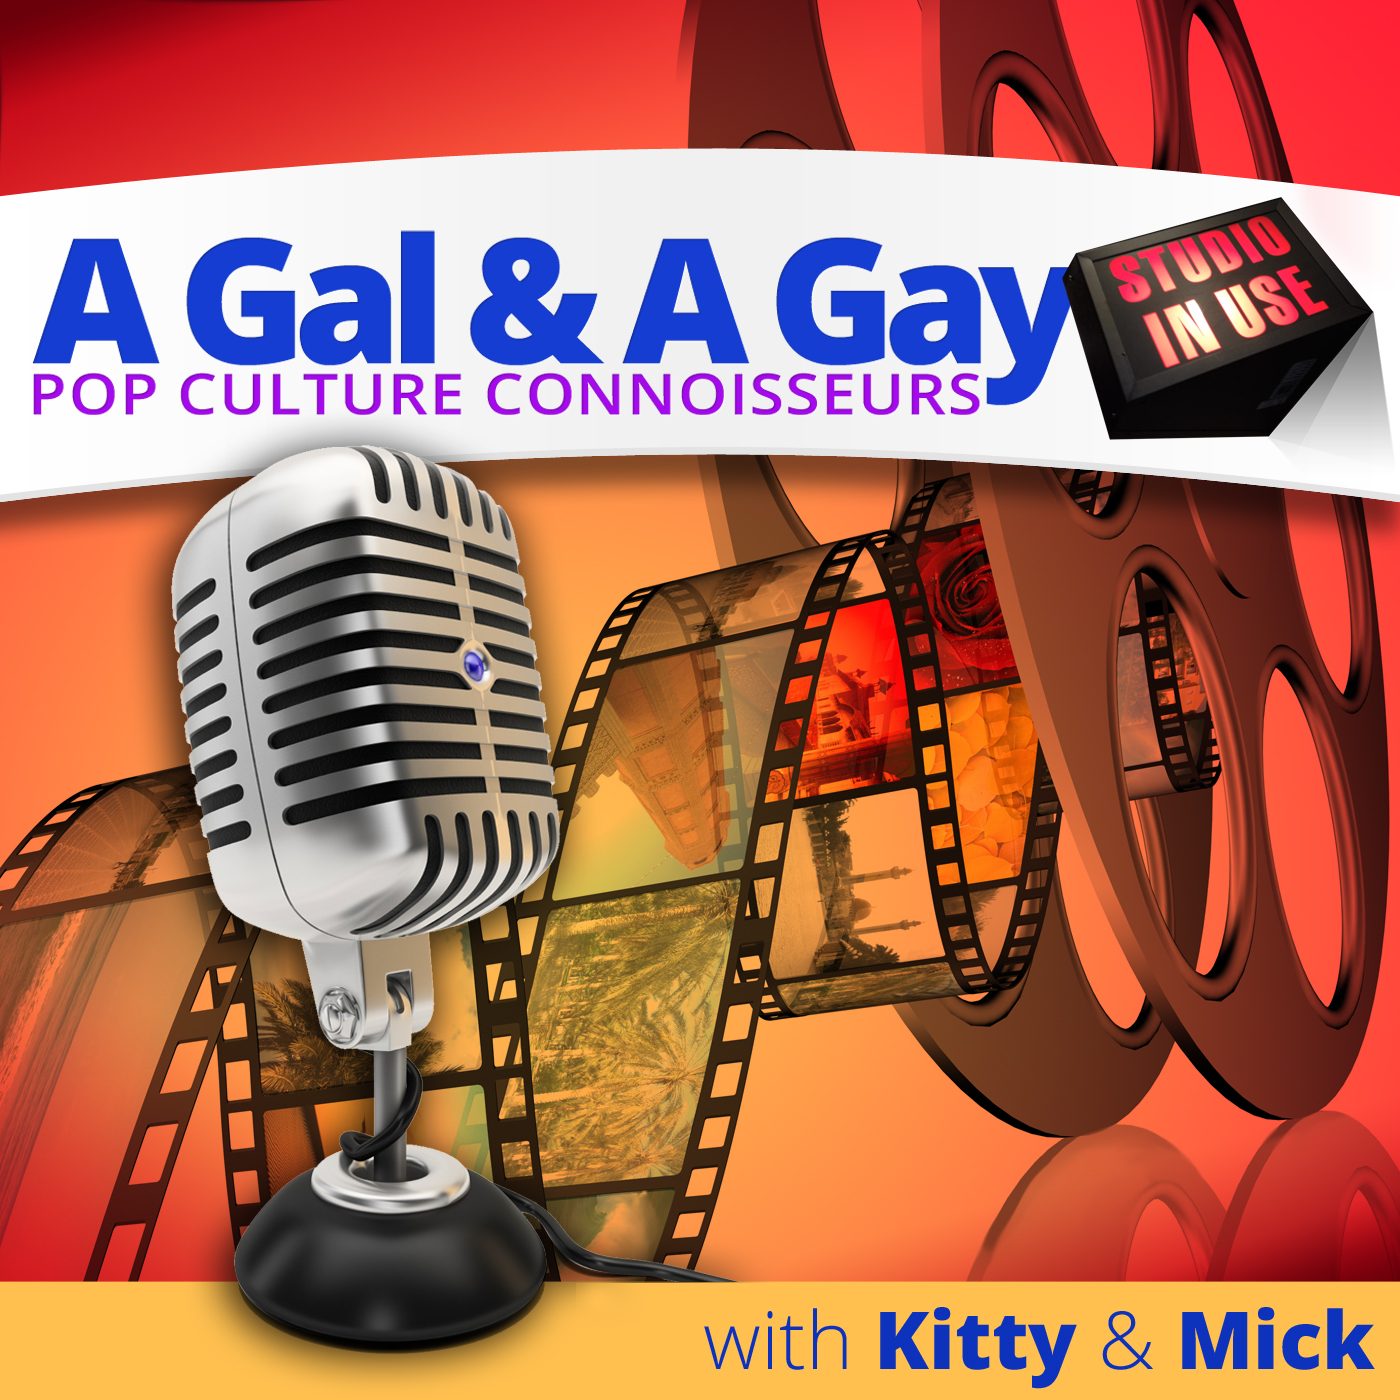 Pop Culture Connoisseurs: A Gal & A Gay